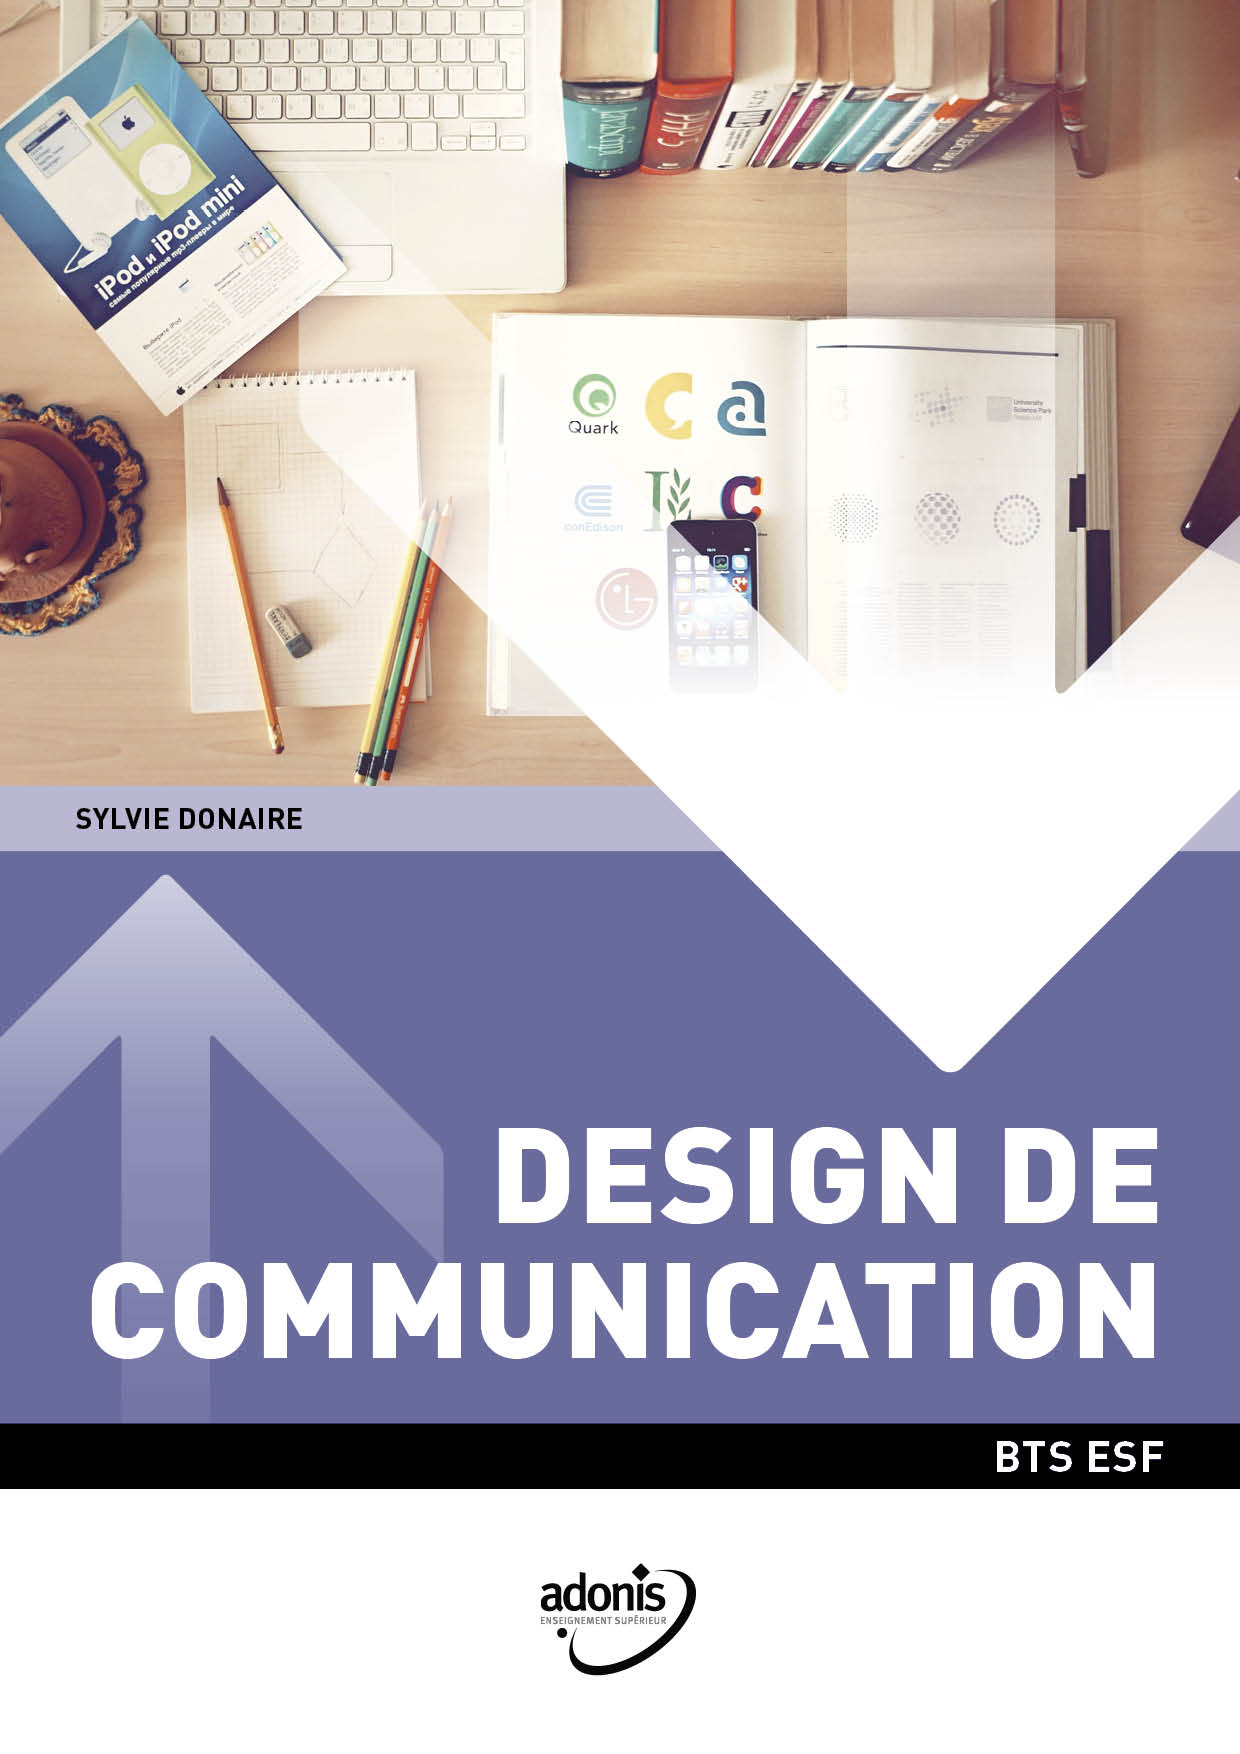 BTS ESF - Design de communication